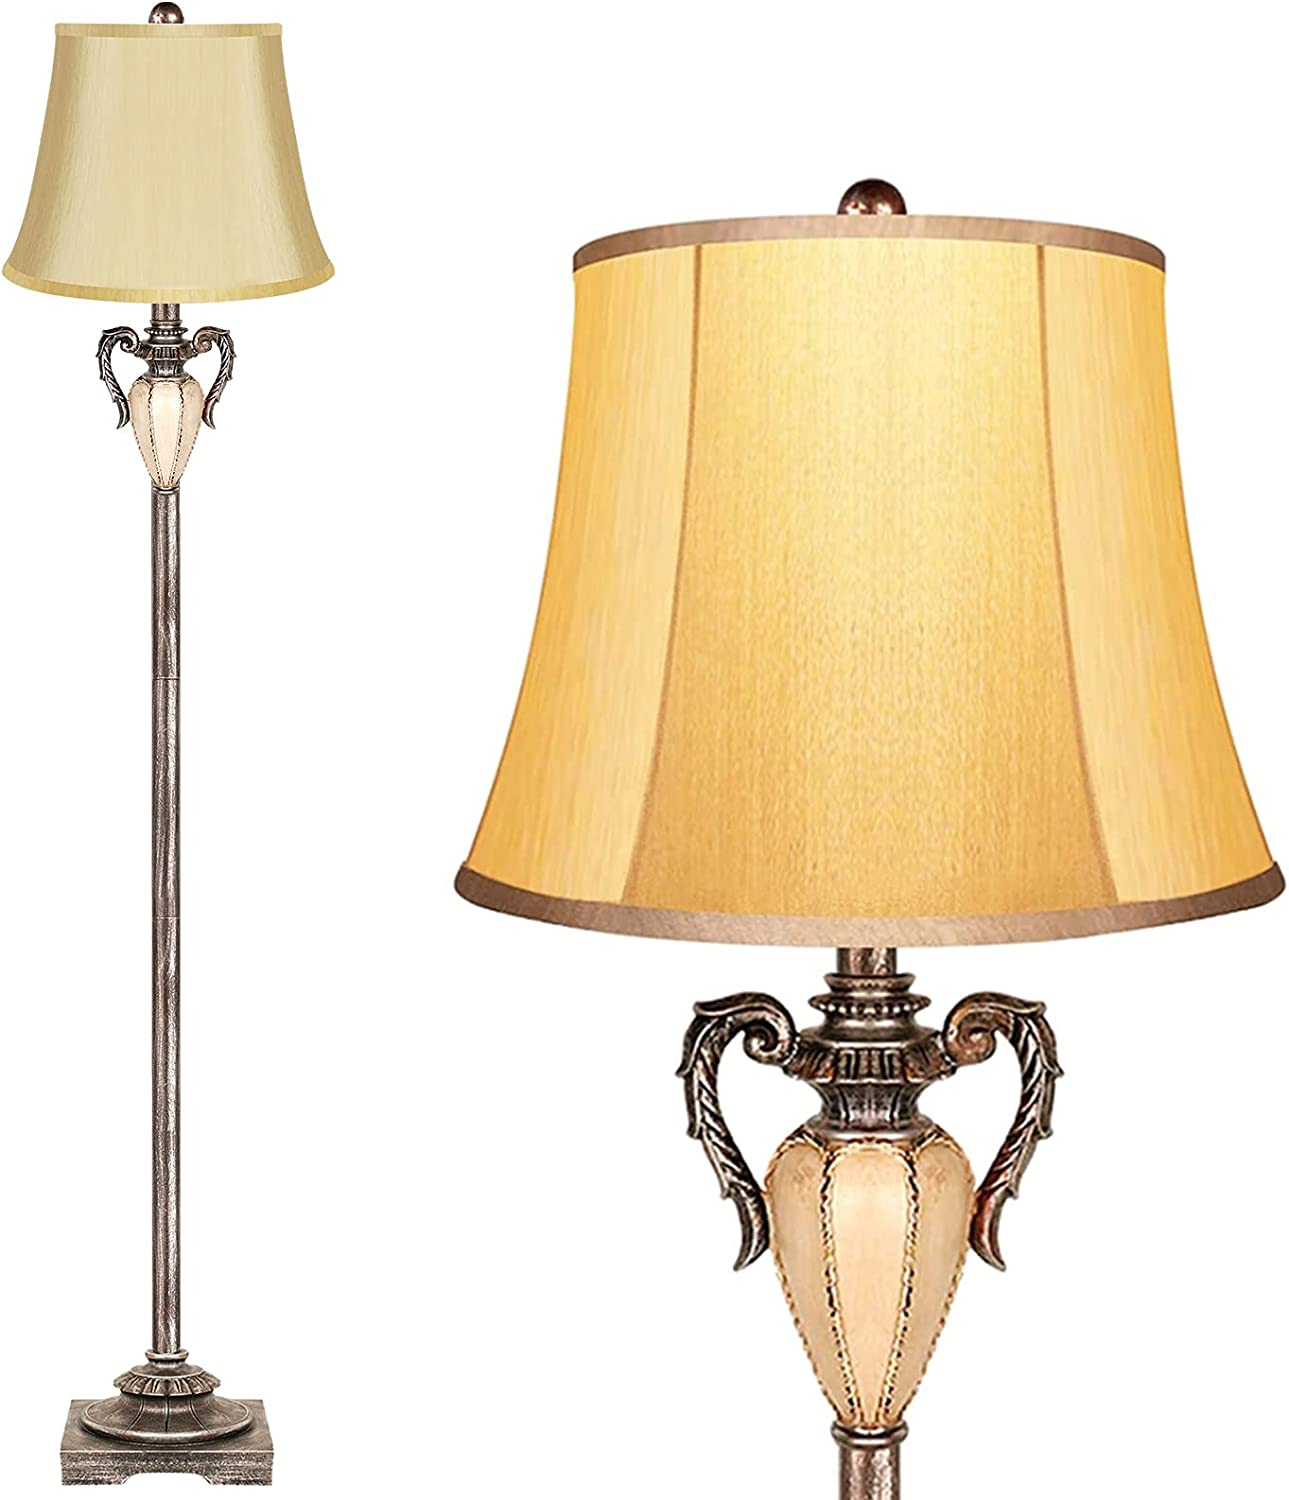 Traditional Floor Lamps Classic for Living PARTPHONER Limited time trial price Classic Room Stan